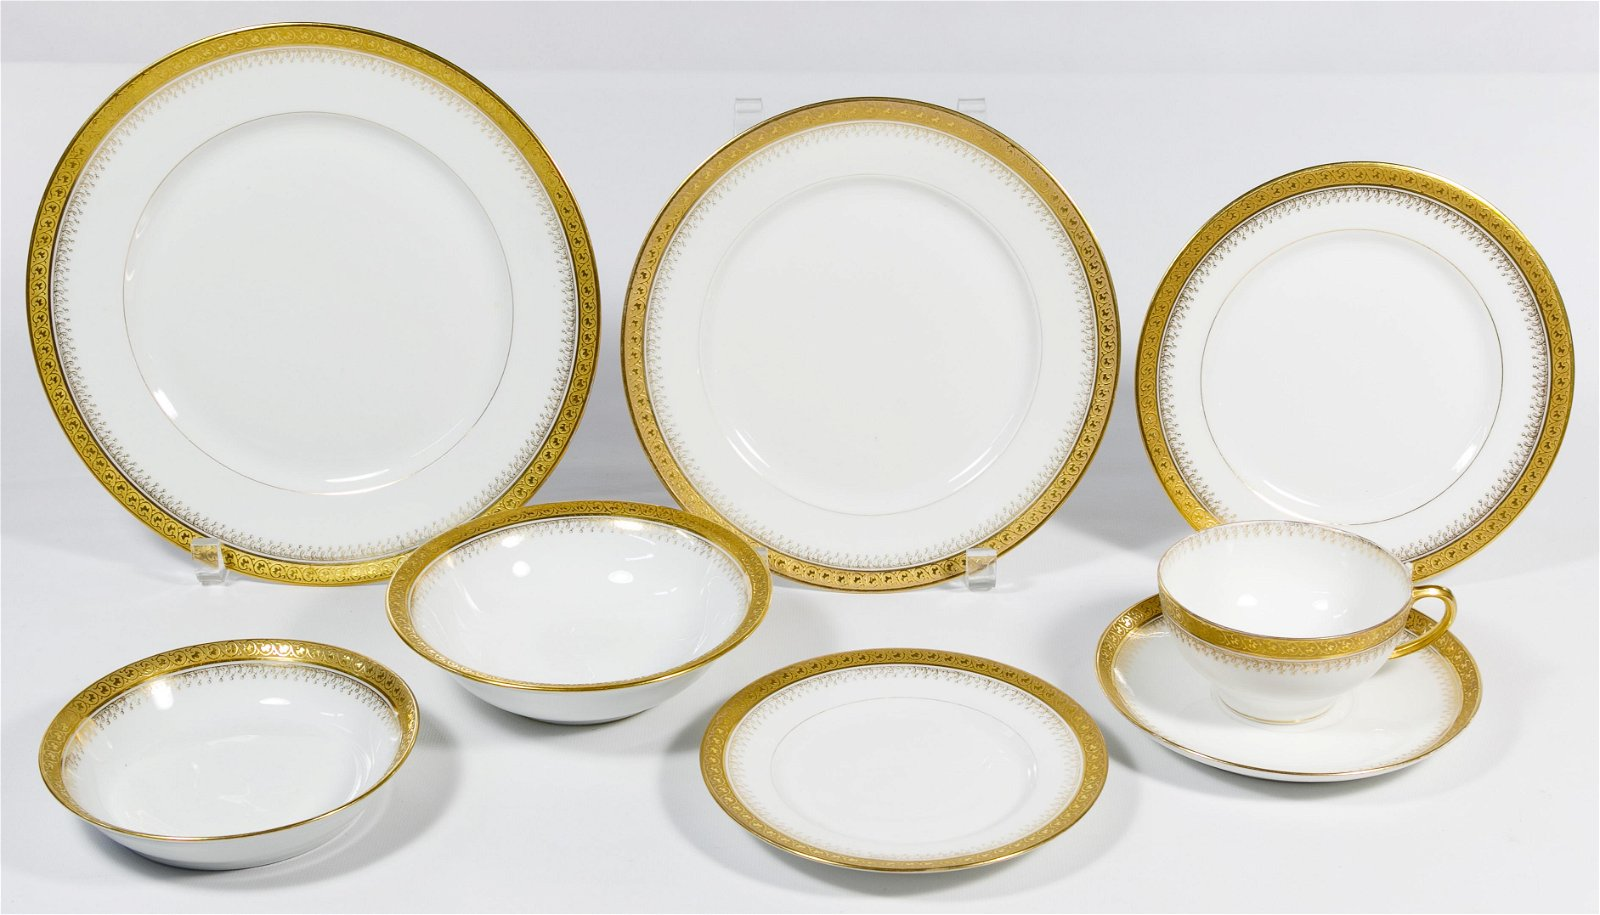 William Guerin Limoges France China Service